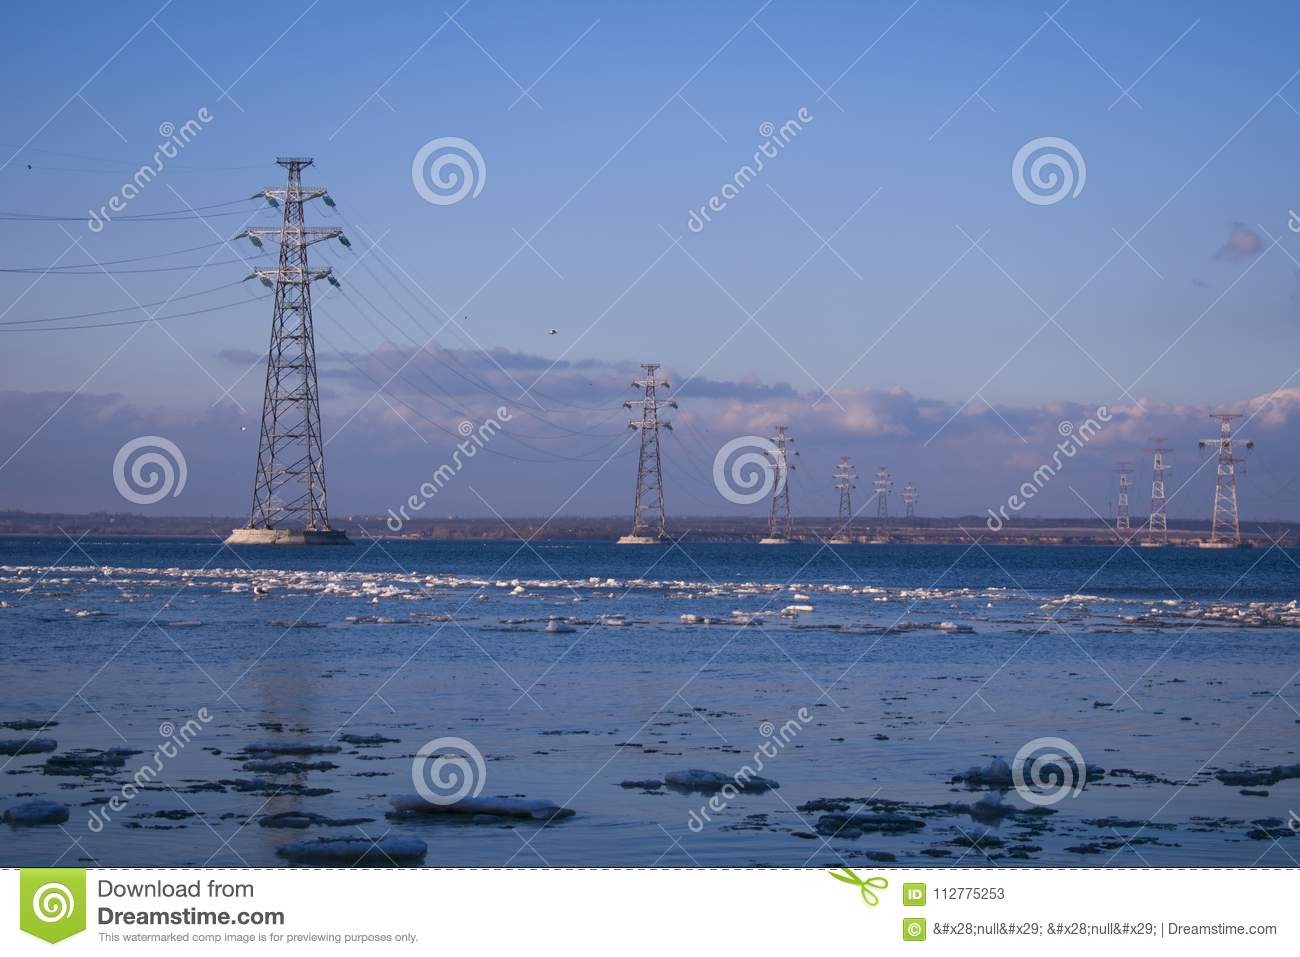 The electric transmission line passing through the river against